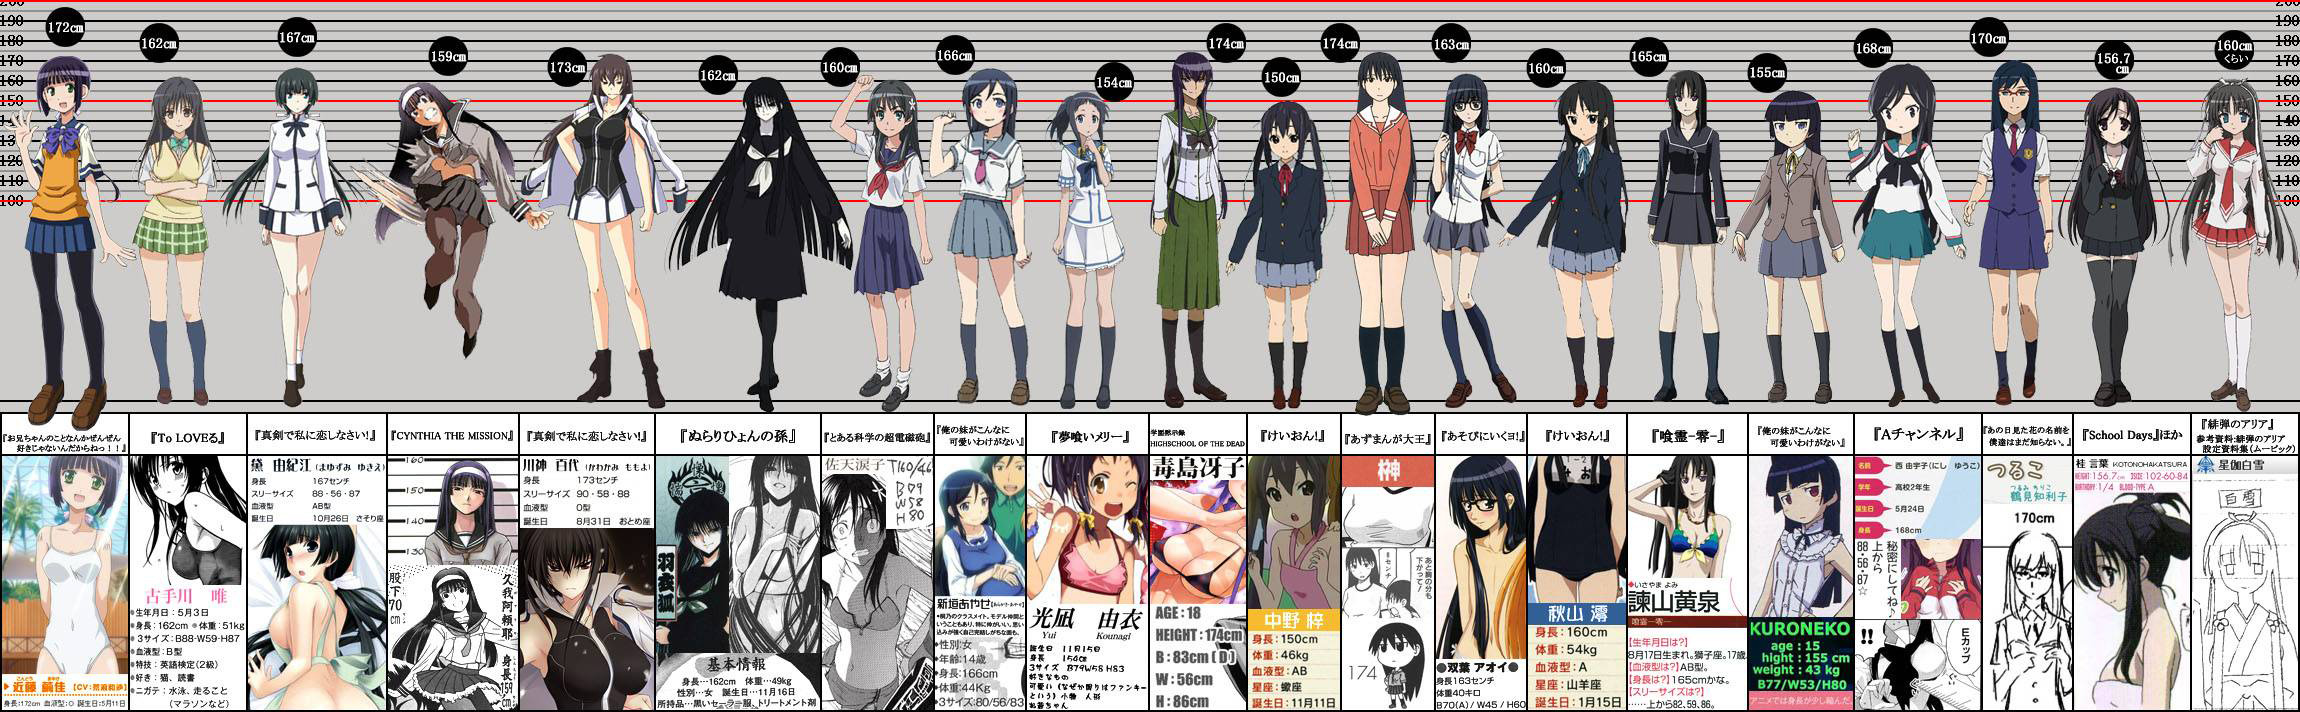 Anime Characters 165 Cm : Moe female anime characters height comparison chart